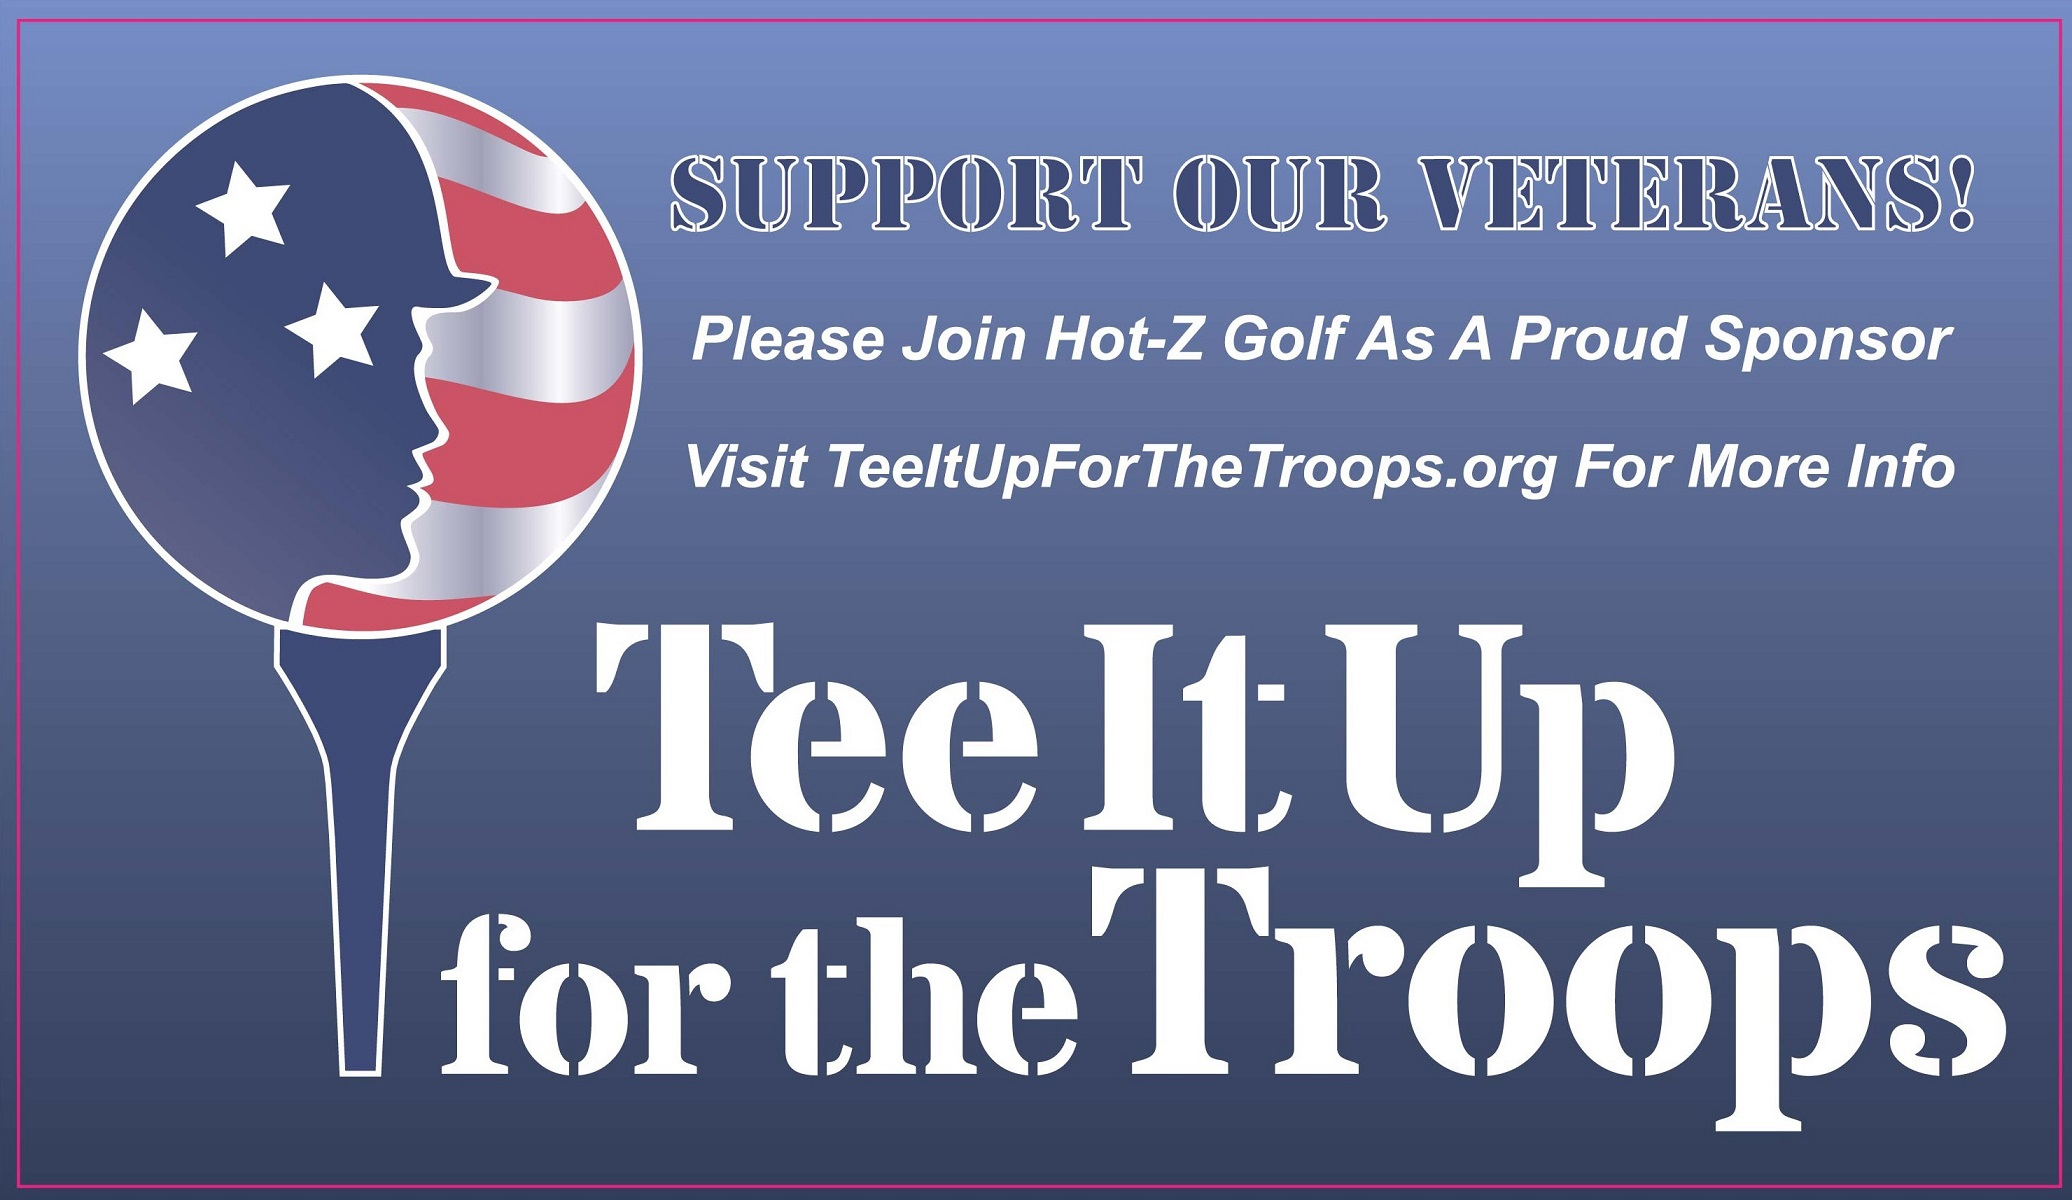 tee it up for the troops banner image - Hot-Z USA Military Bags